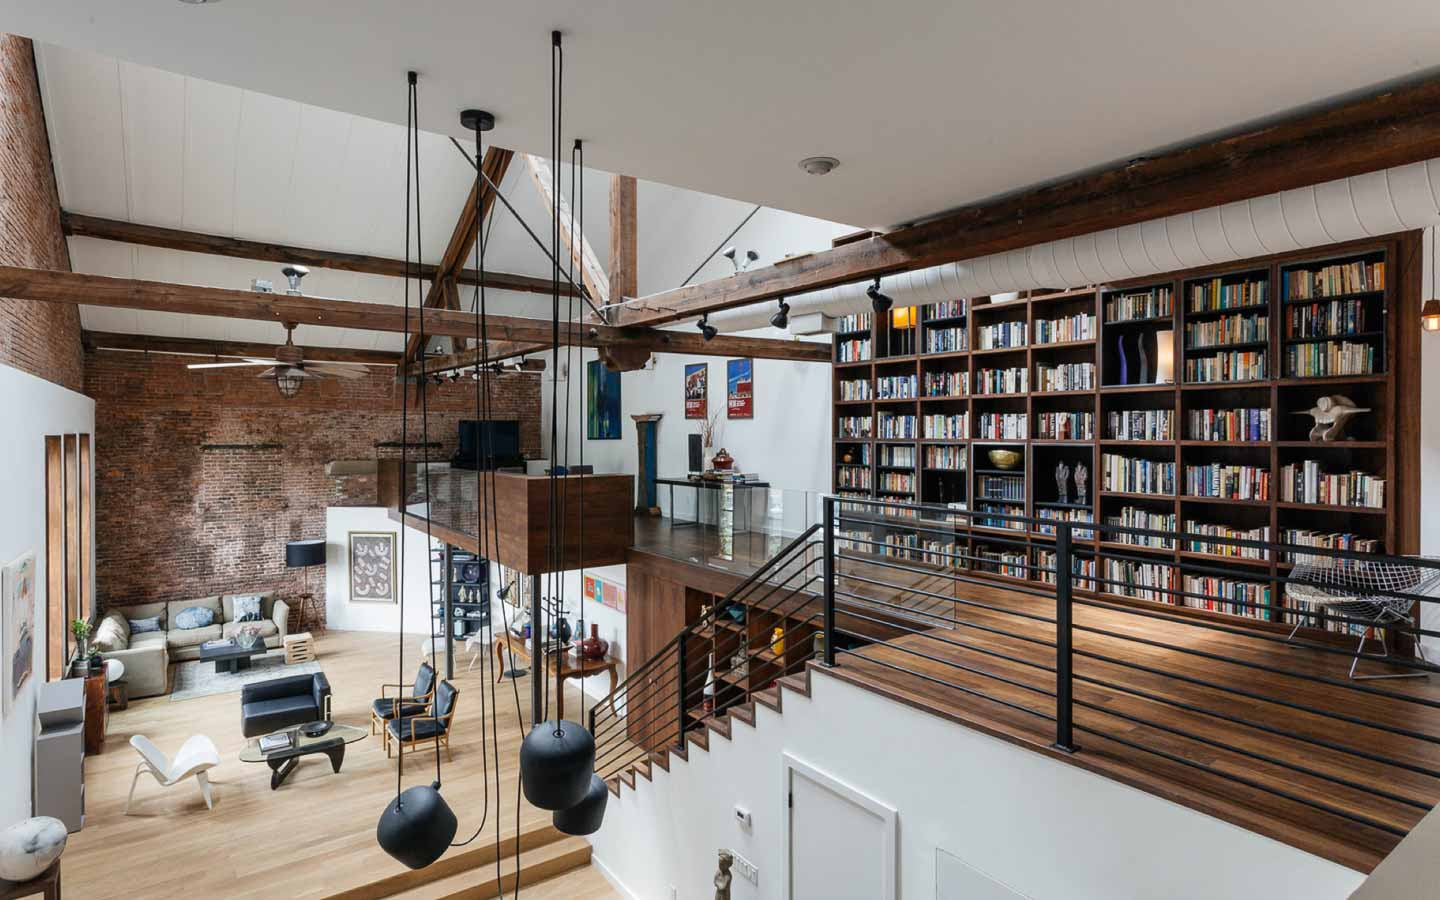 Jersey digs exclusive wells fargo loft with 45 39 ceilings for Lofts in nyc for sale